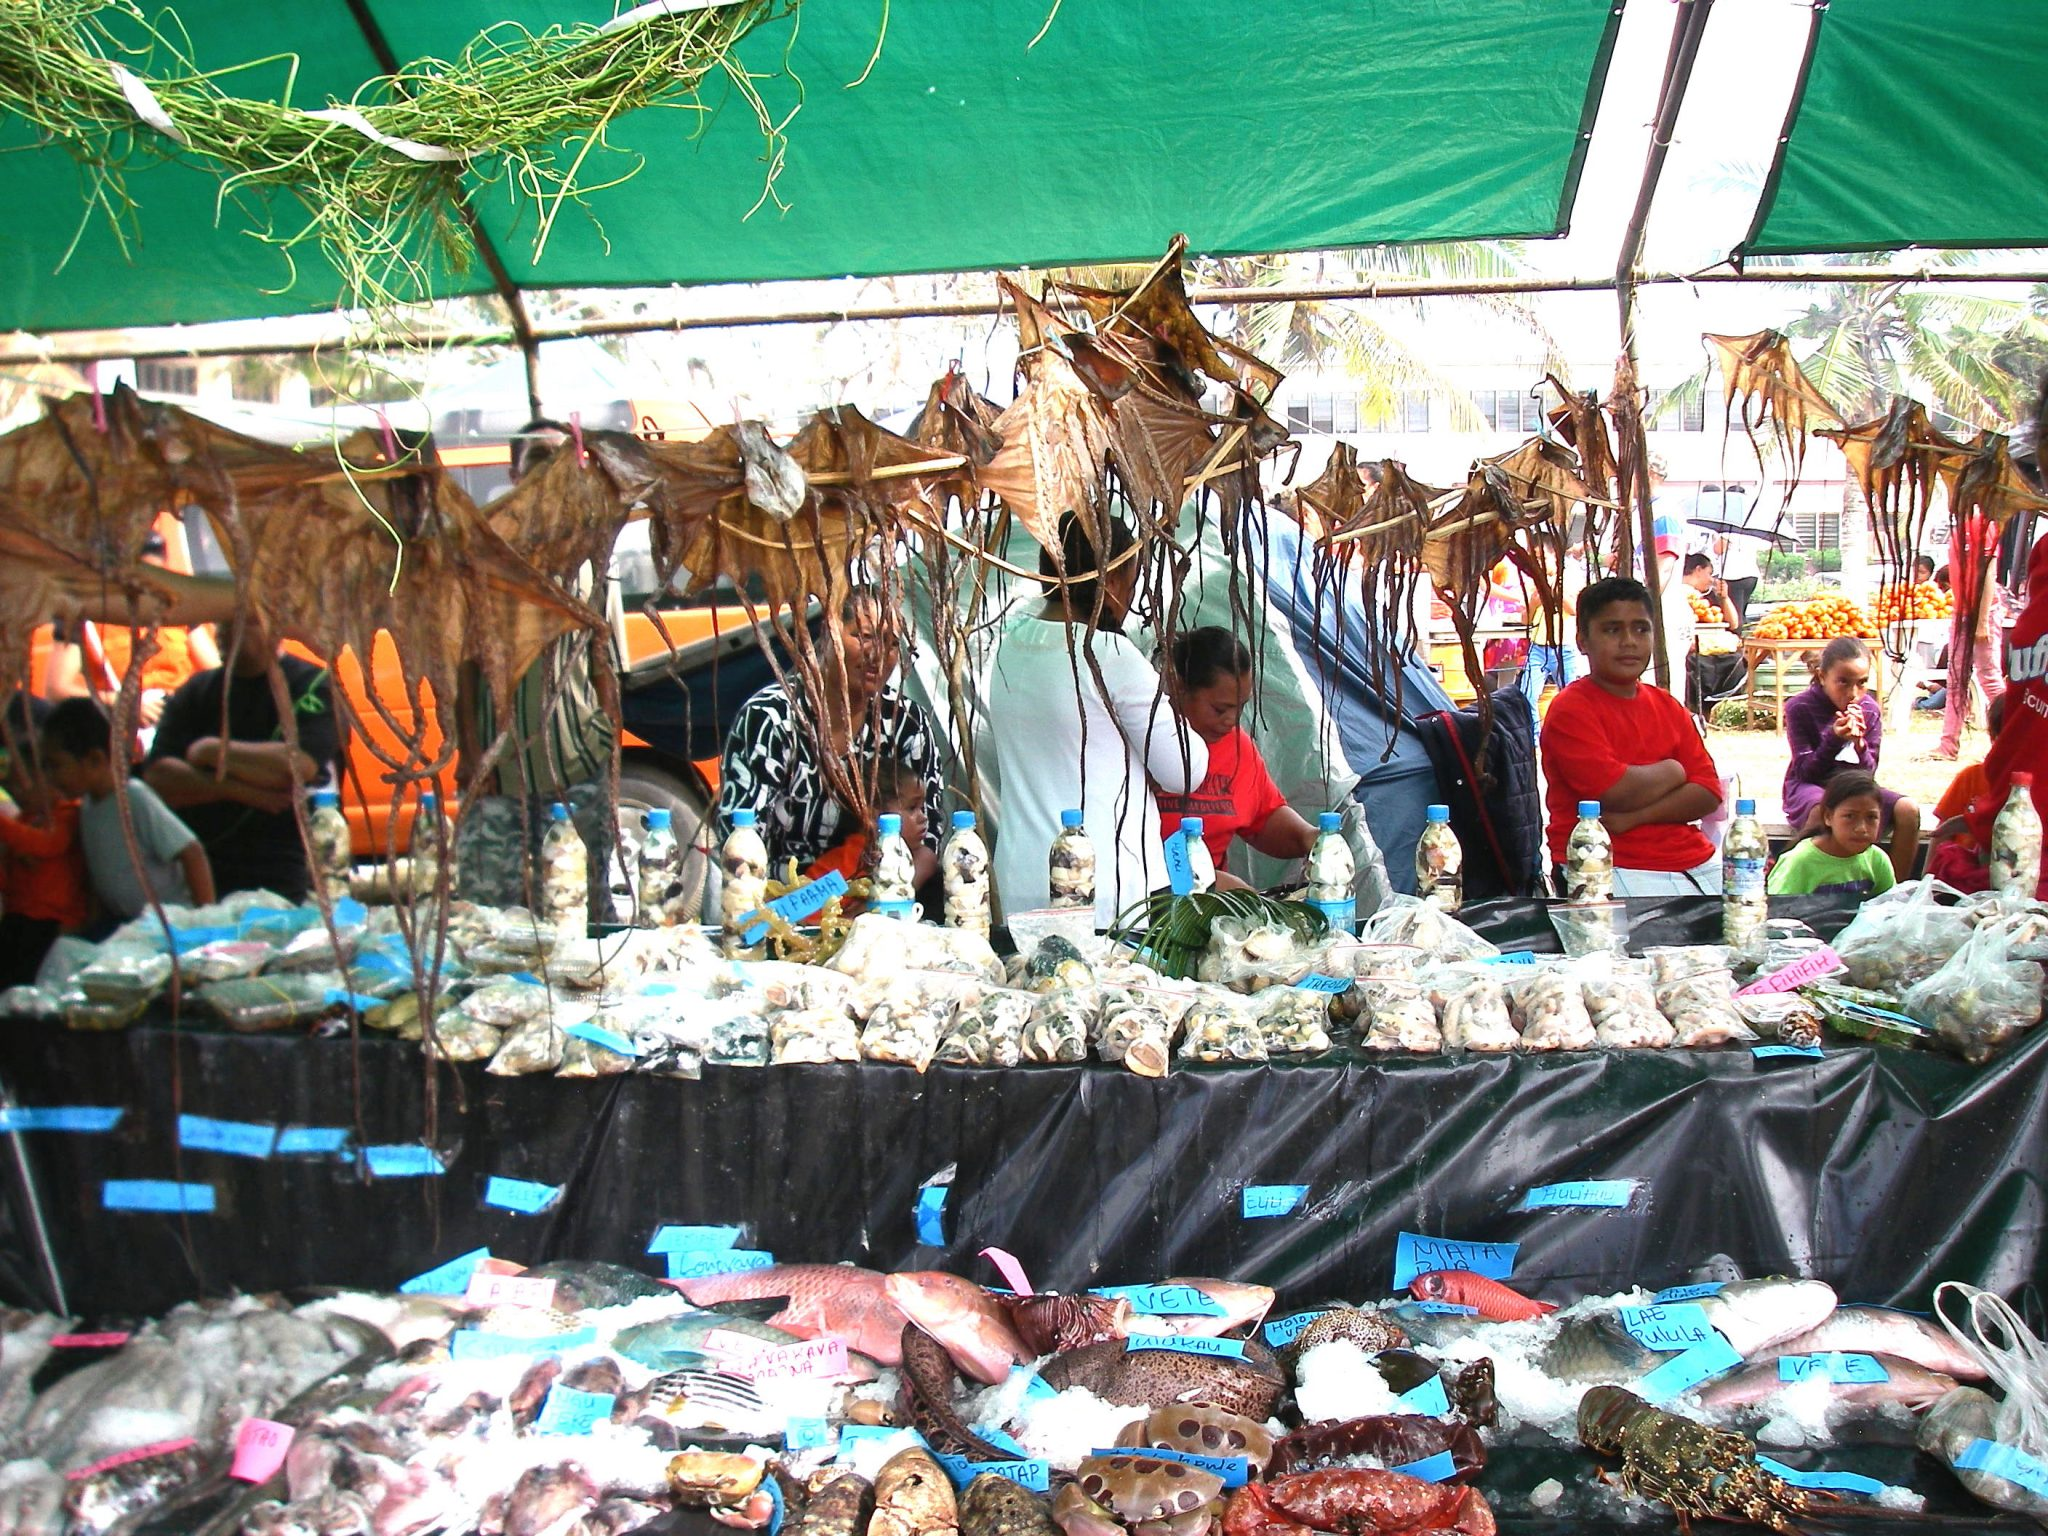 99. The variety of bounty from the sea presented by this family, as by others, was staggering! Sea weed, fish of all types, shell creatures, dried octopus, pickled sea creatures in bottles, and more were in countless booths at this fantastic show!